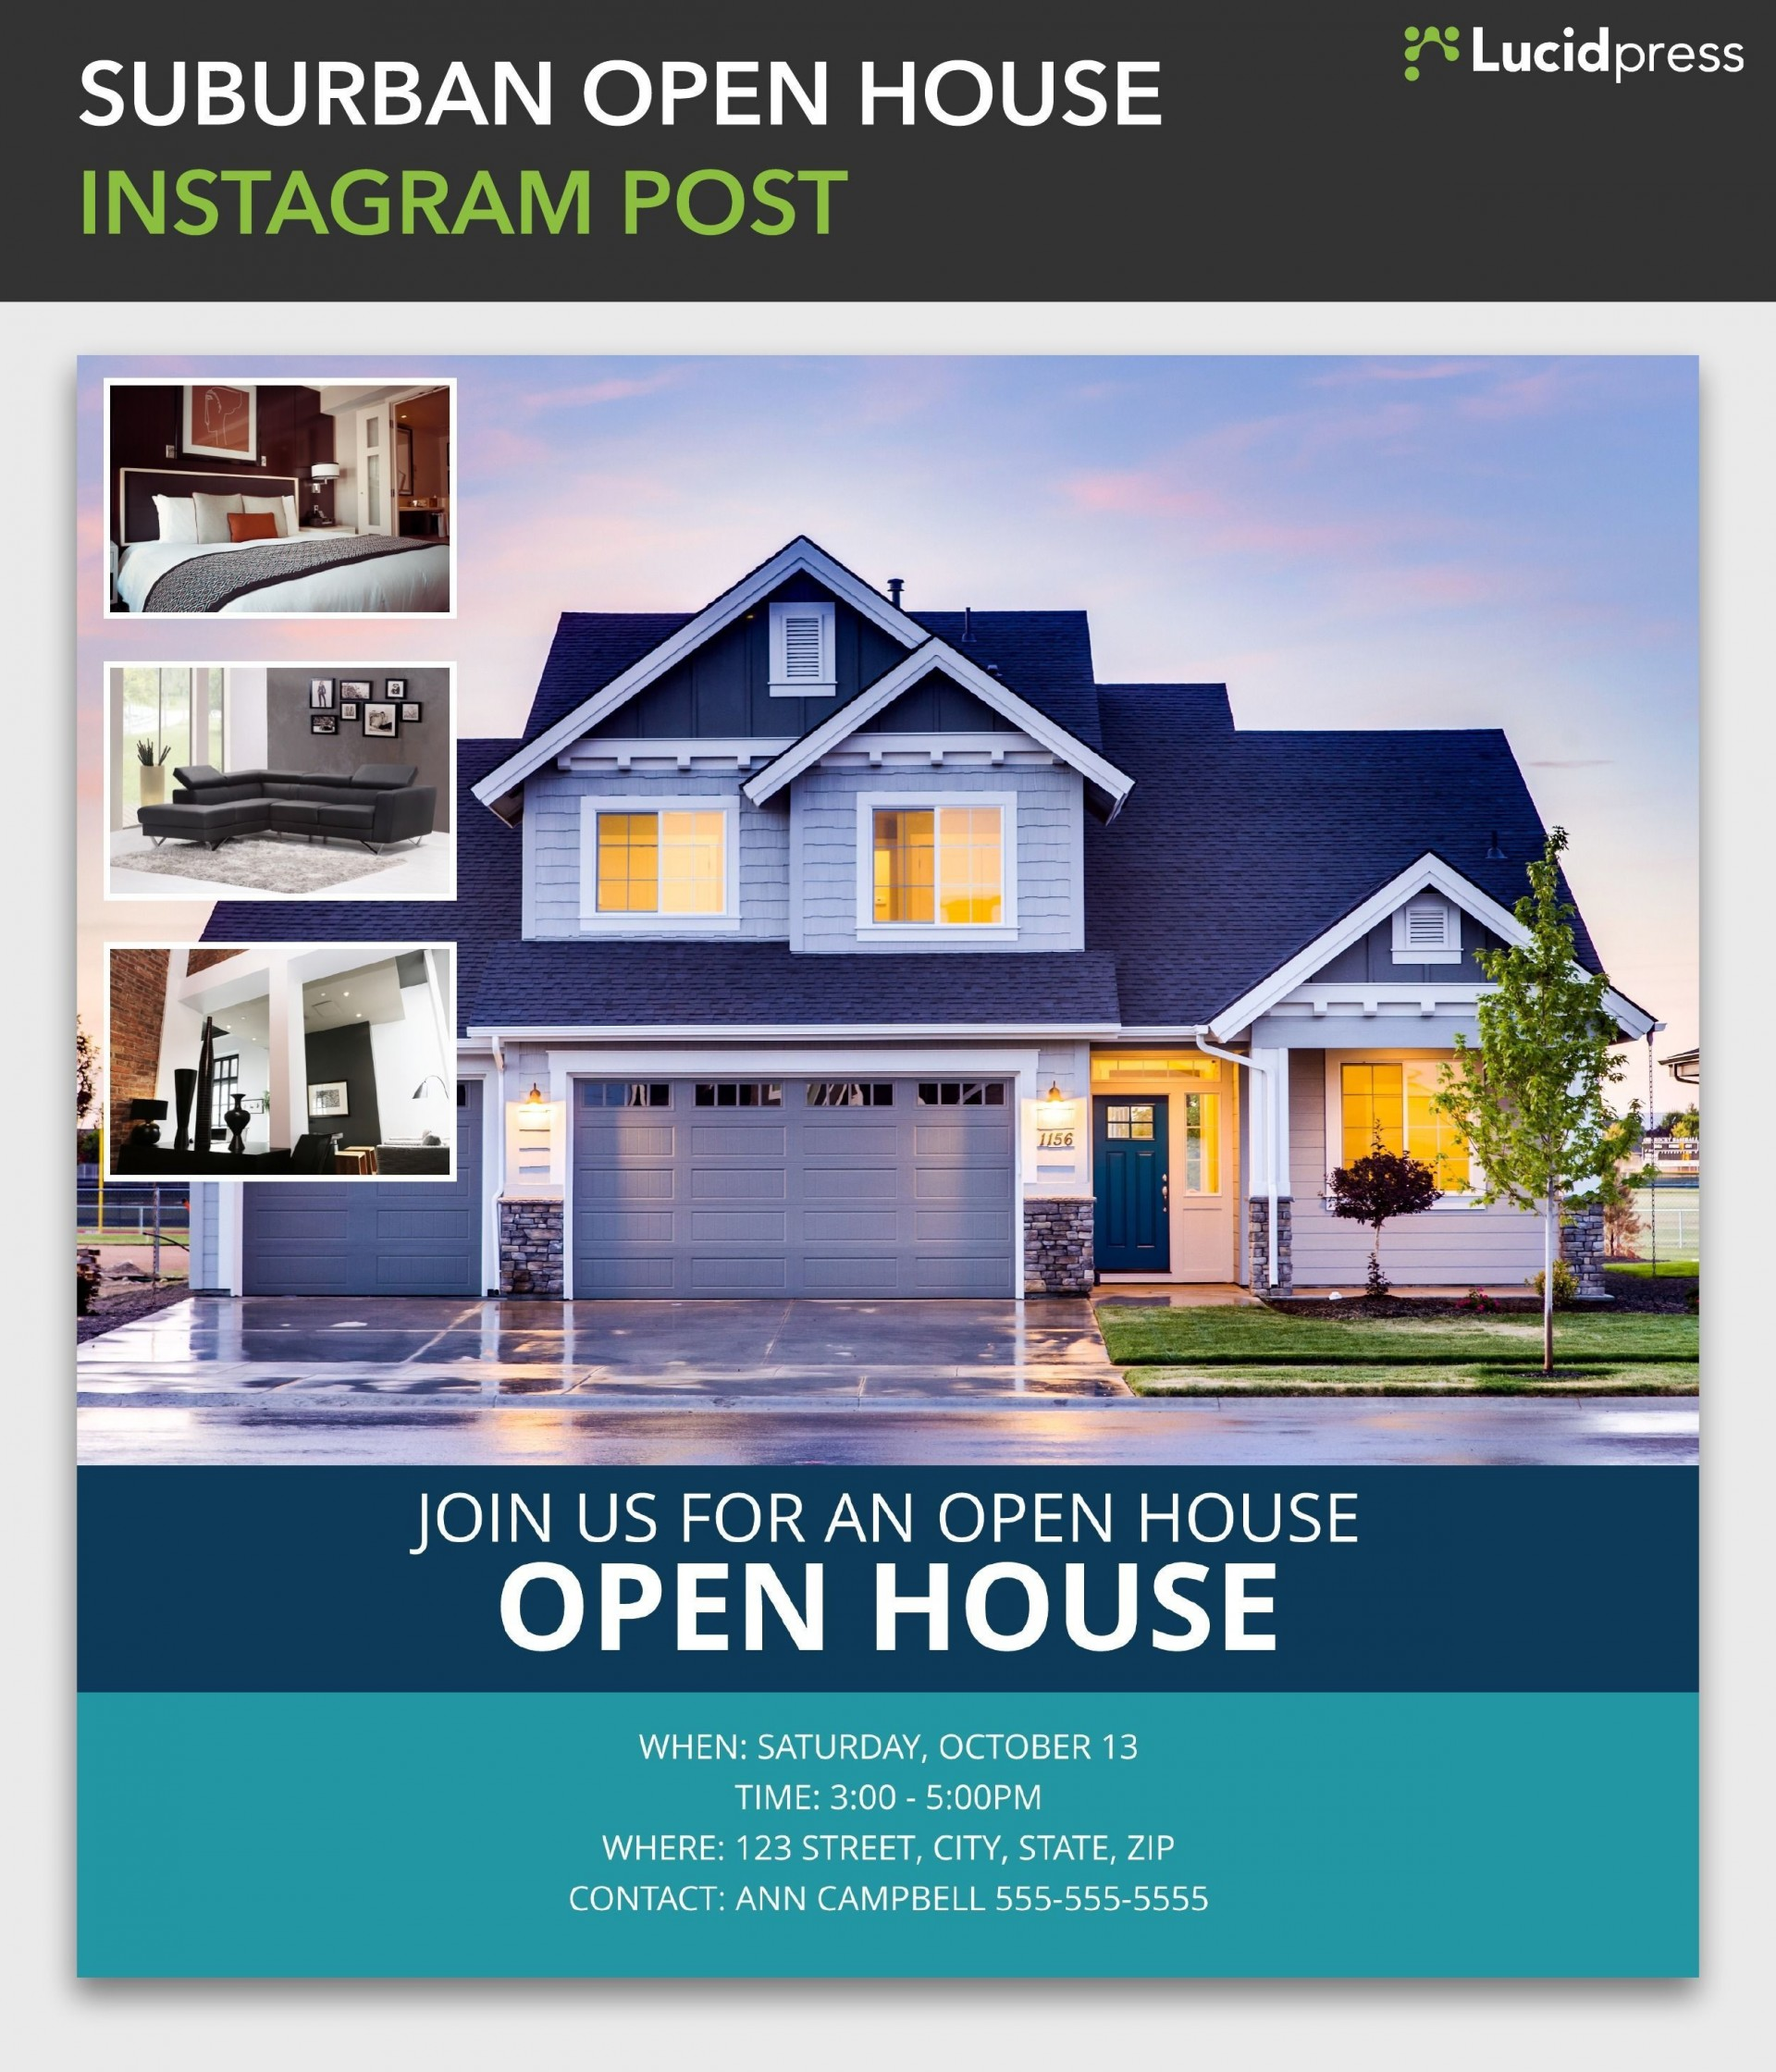 000 Dreaded Open House Flyer Template Word High Resolution  Free Microsoft1920